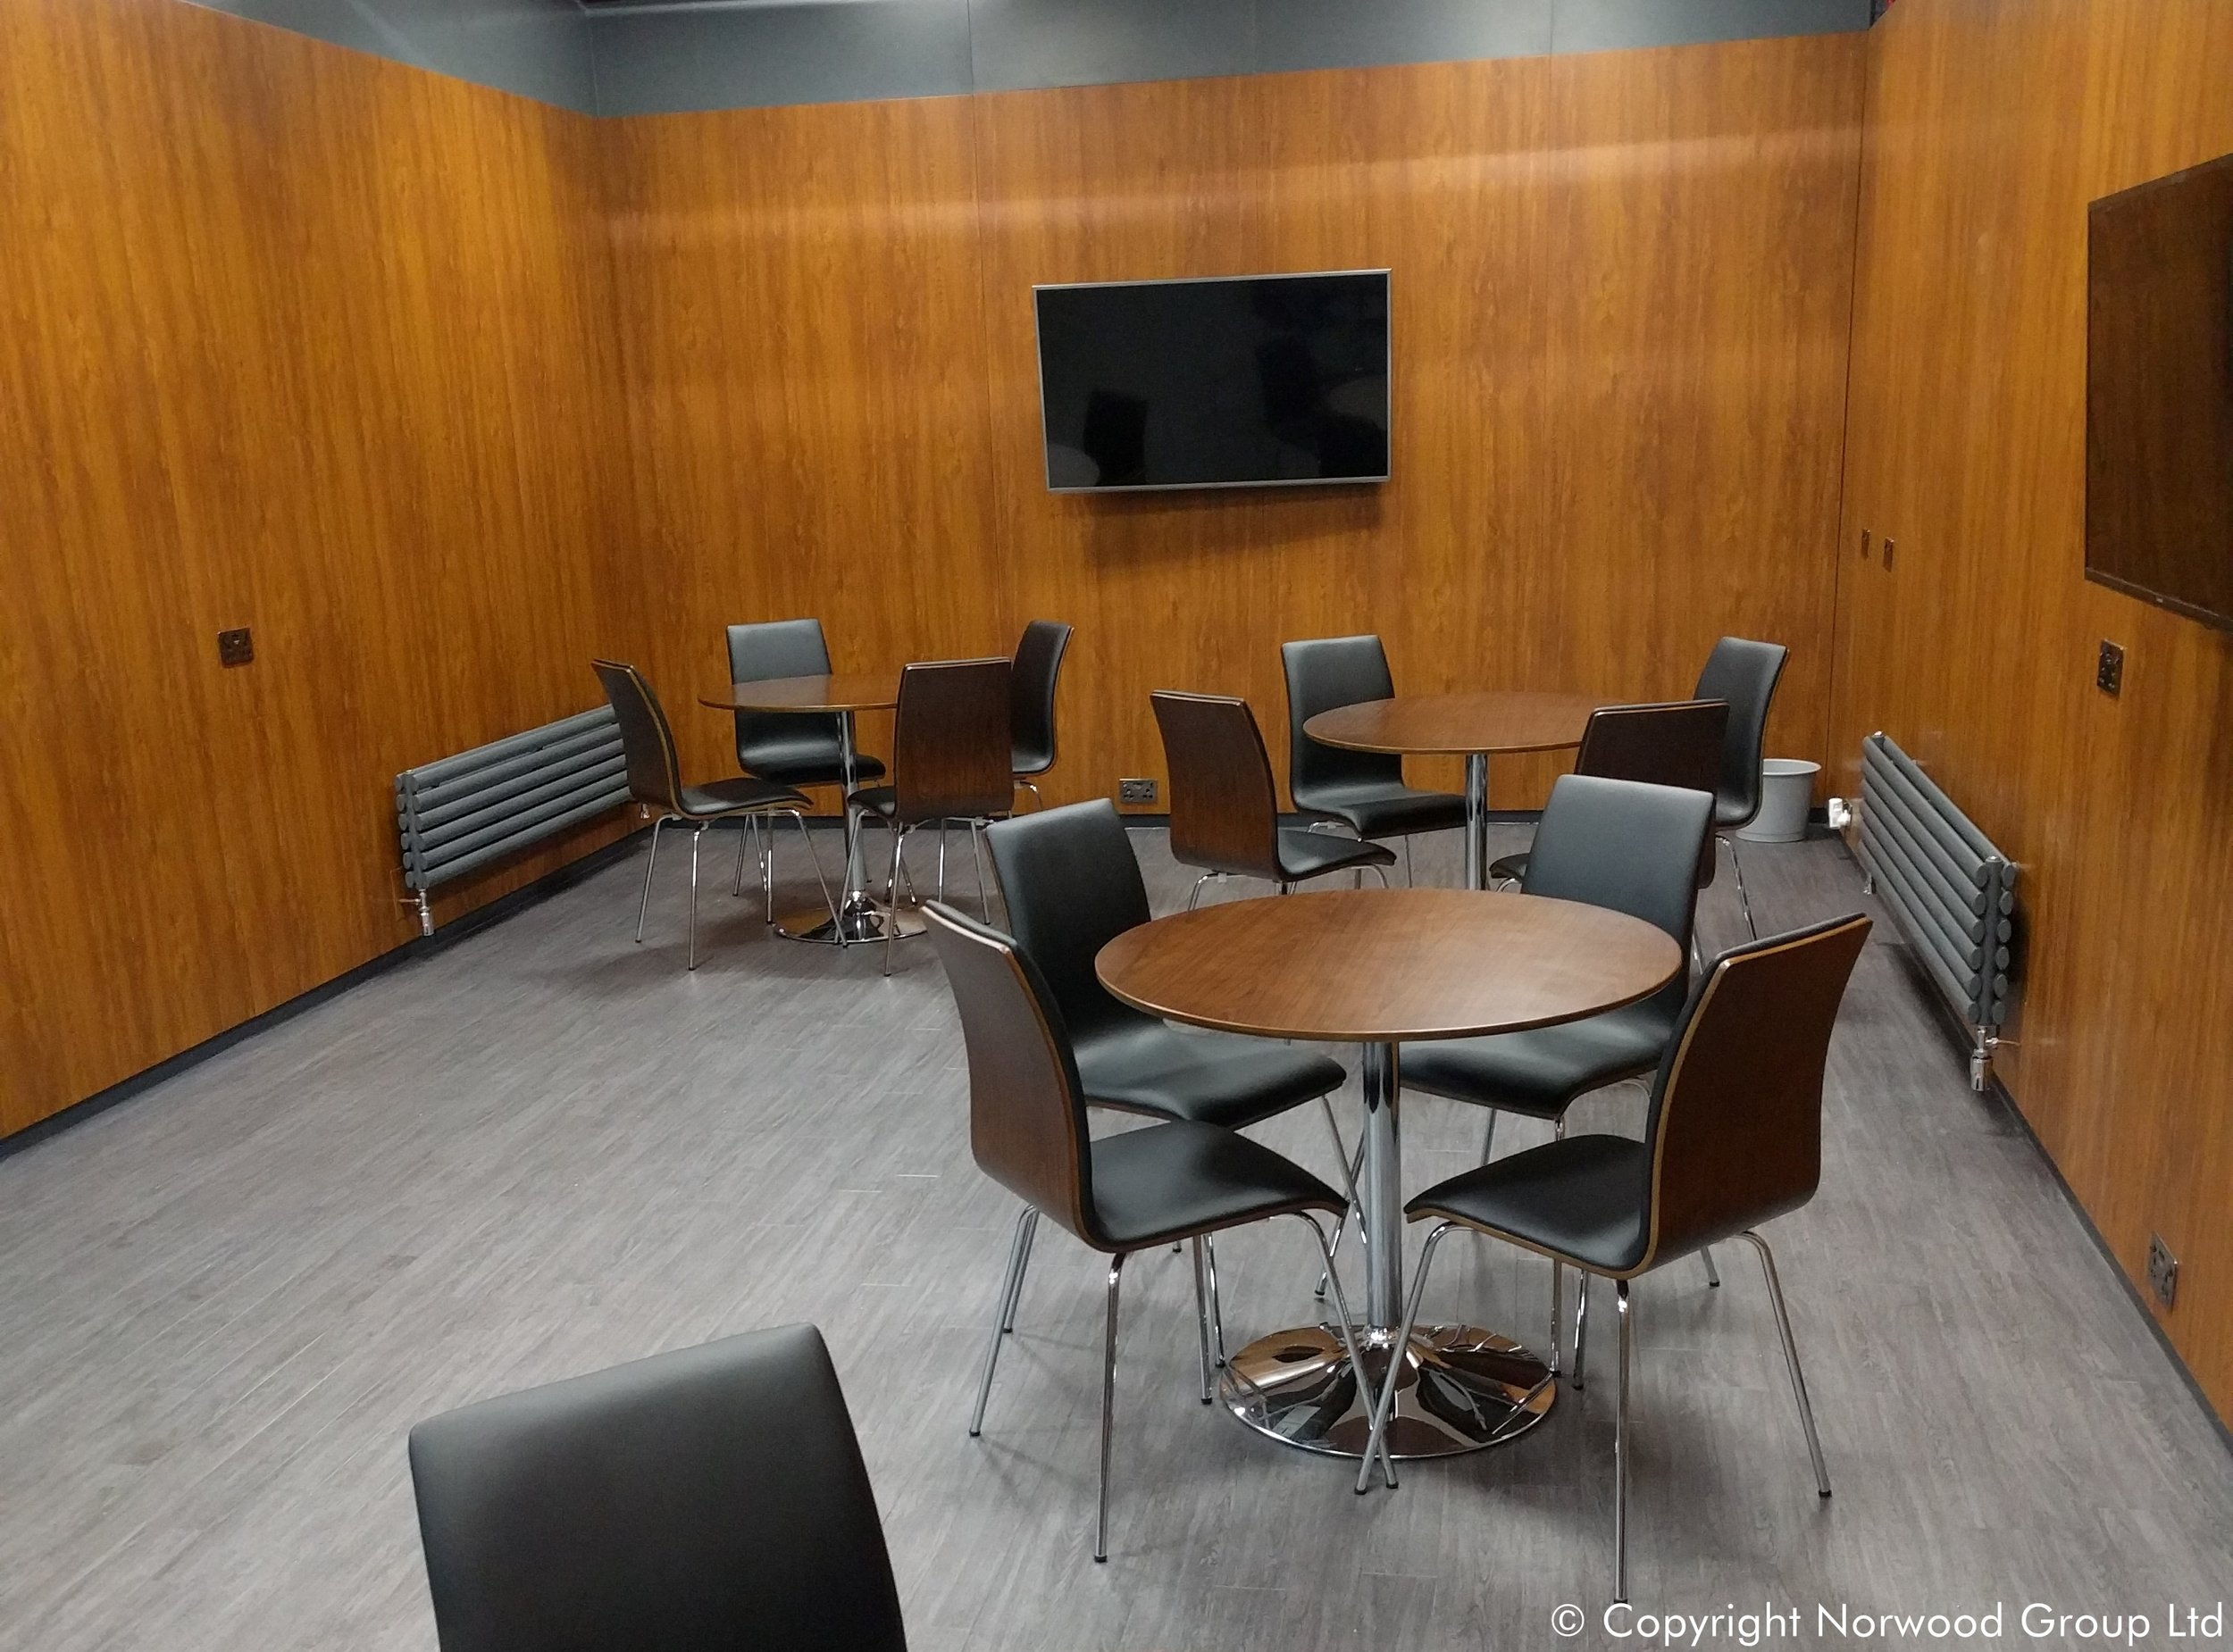 Charles Taylor Auctioneers Golden Oak Coloured Steel Wall Lining Cladding Partitions